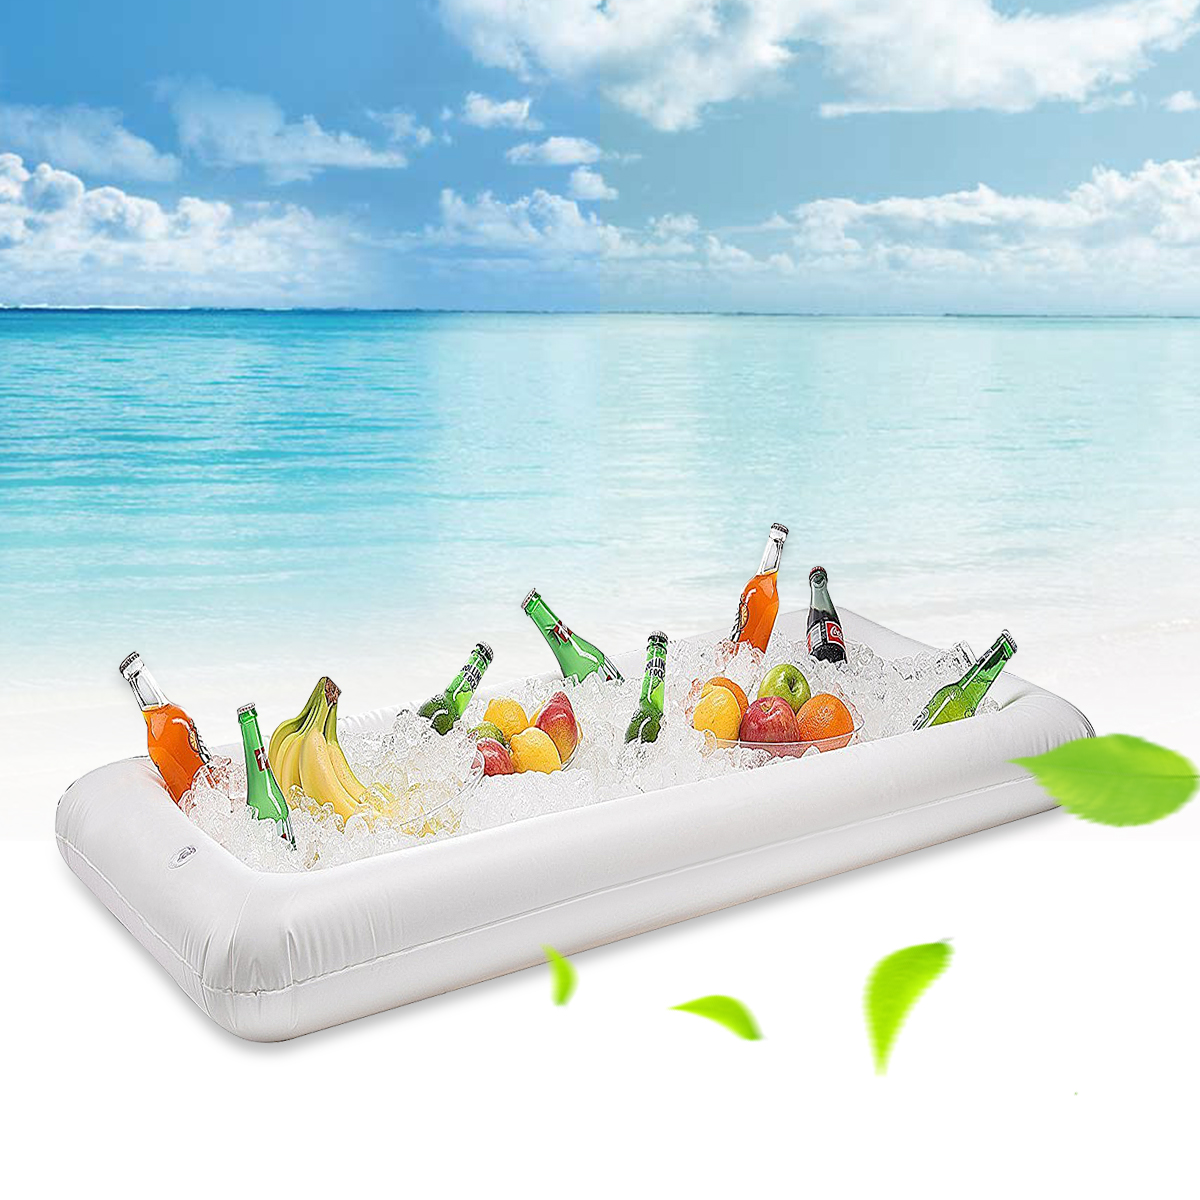 Inflatable Serving Bar Table Pool Float Hot Summer Water Party Ice Bucket Tray Food Drink Holder 51.5 x 24 x 4.5